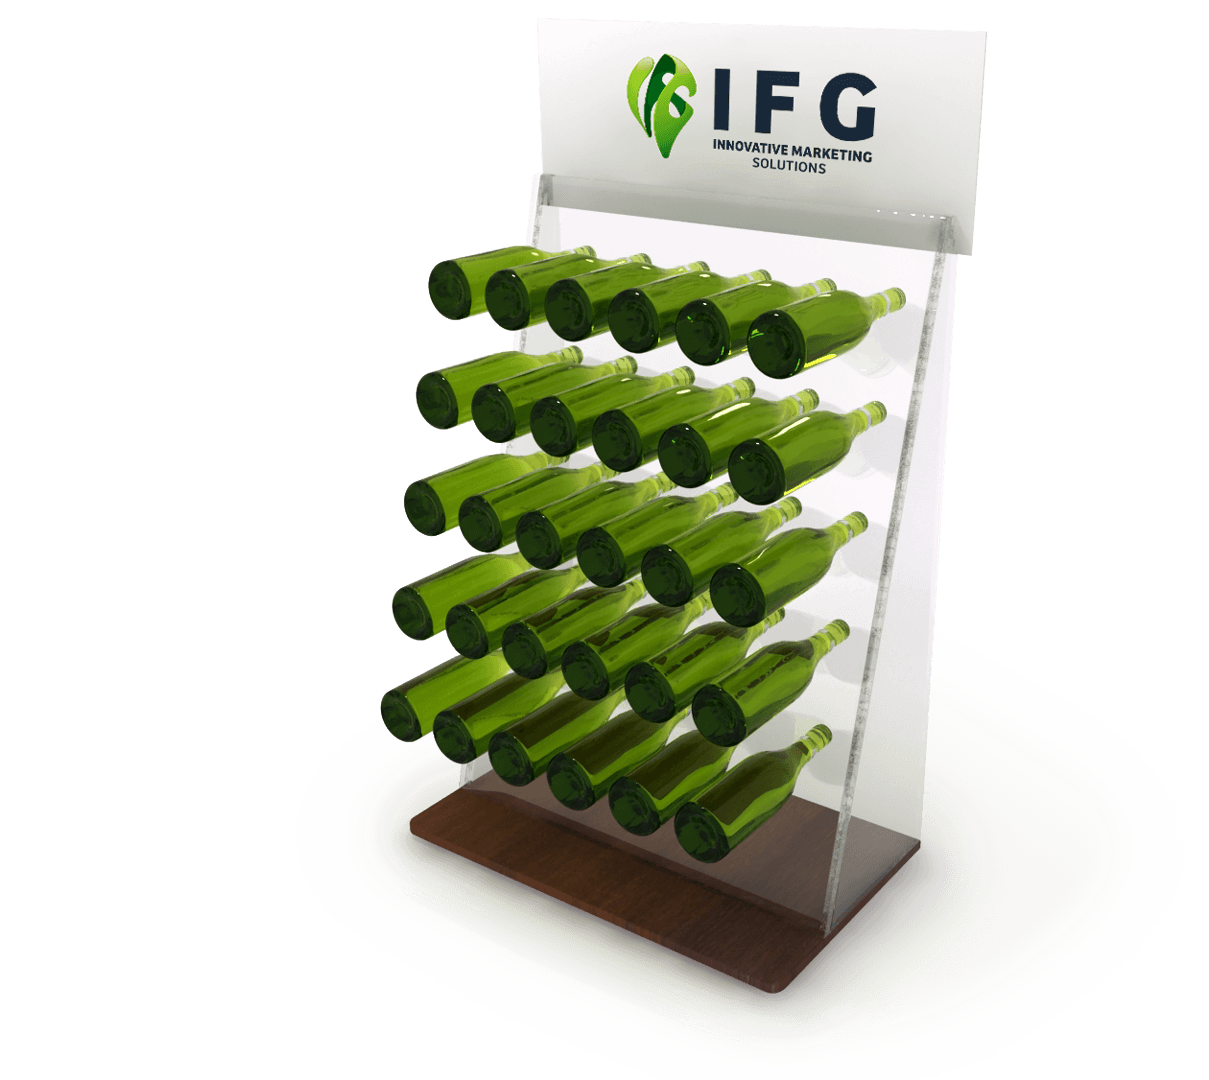 Idea Force IFG Marketing Solutions Innovative Promotion Sales Werbeartikel Promotional Product Geschenkartikel Premium Gifts On-Packs Co-Packs In-Packs POS Verpackung Packaging Display Gastro Fullfilment Quality Control Import